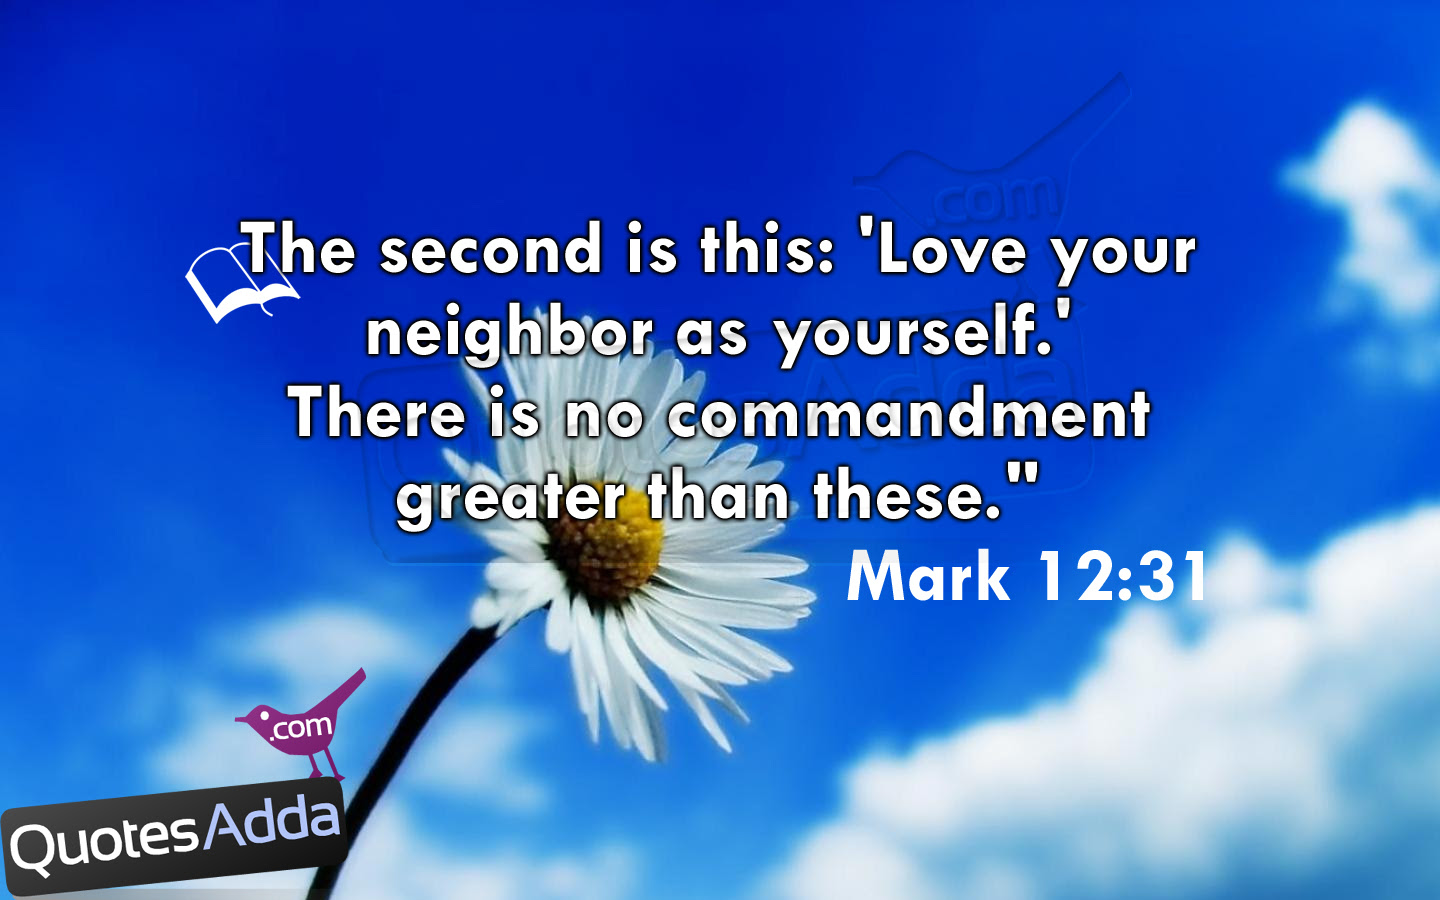 The Second Is This Love Your Neighbor As Yourself There Is No mandment